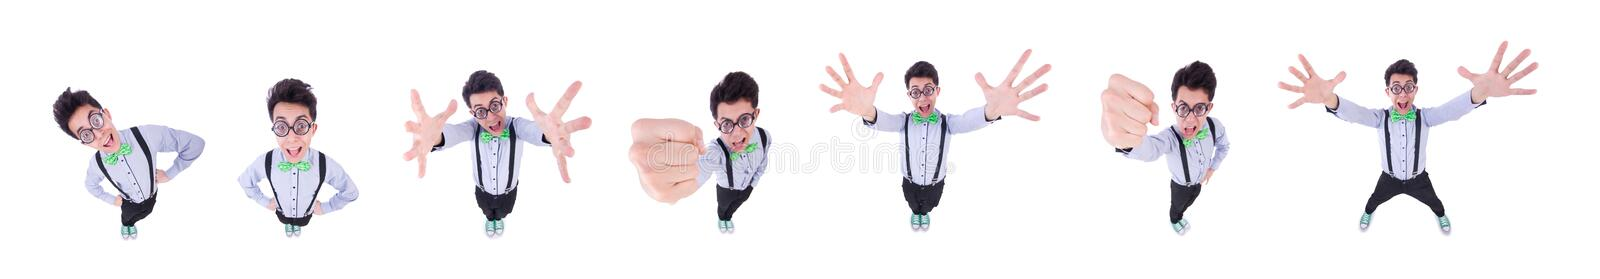 Funny guy isolated on the white background stock photo